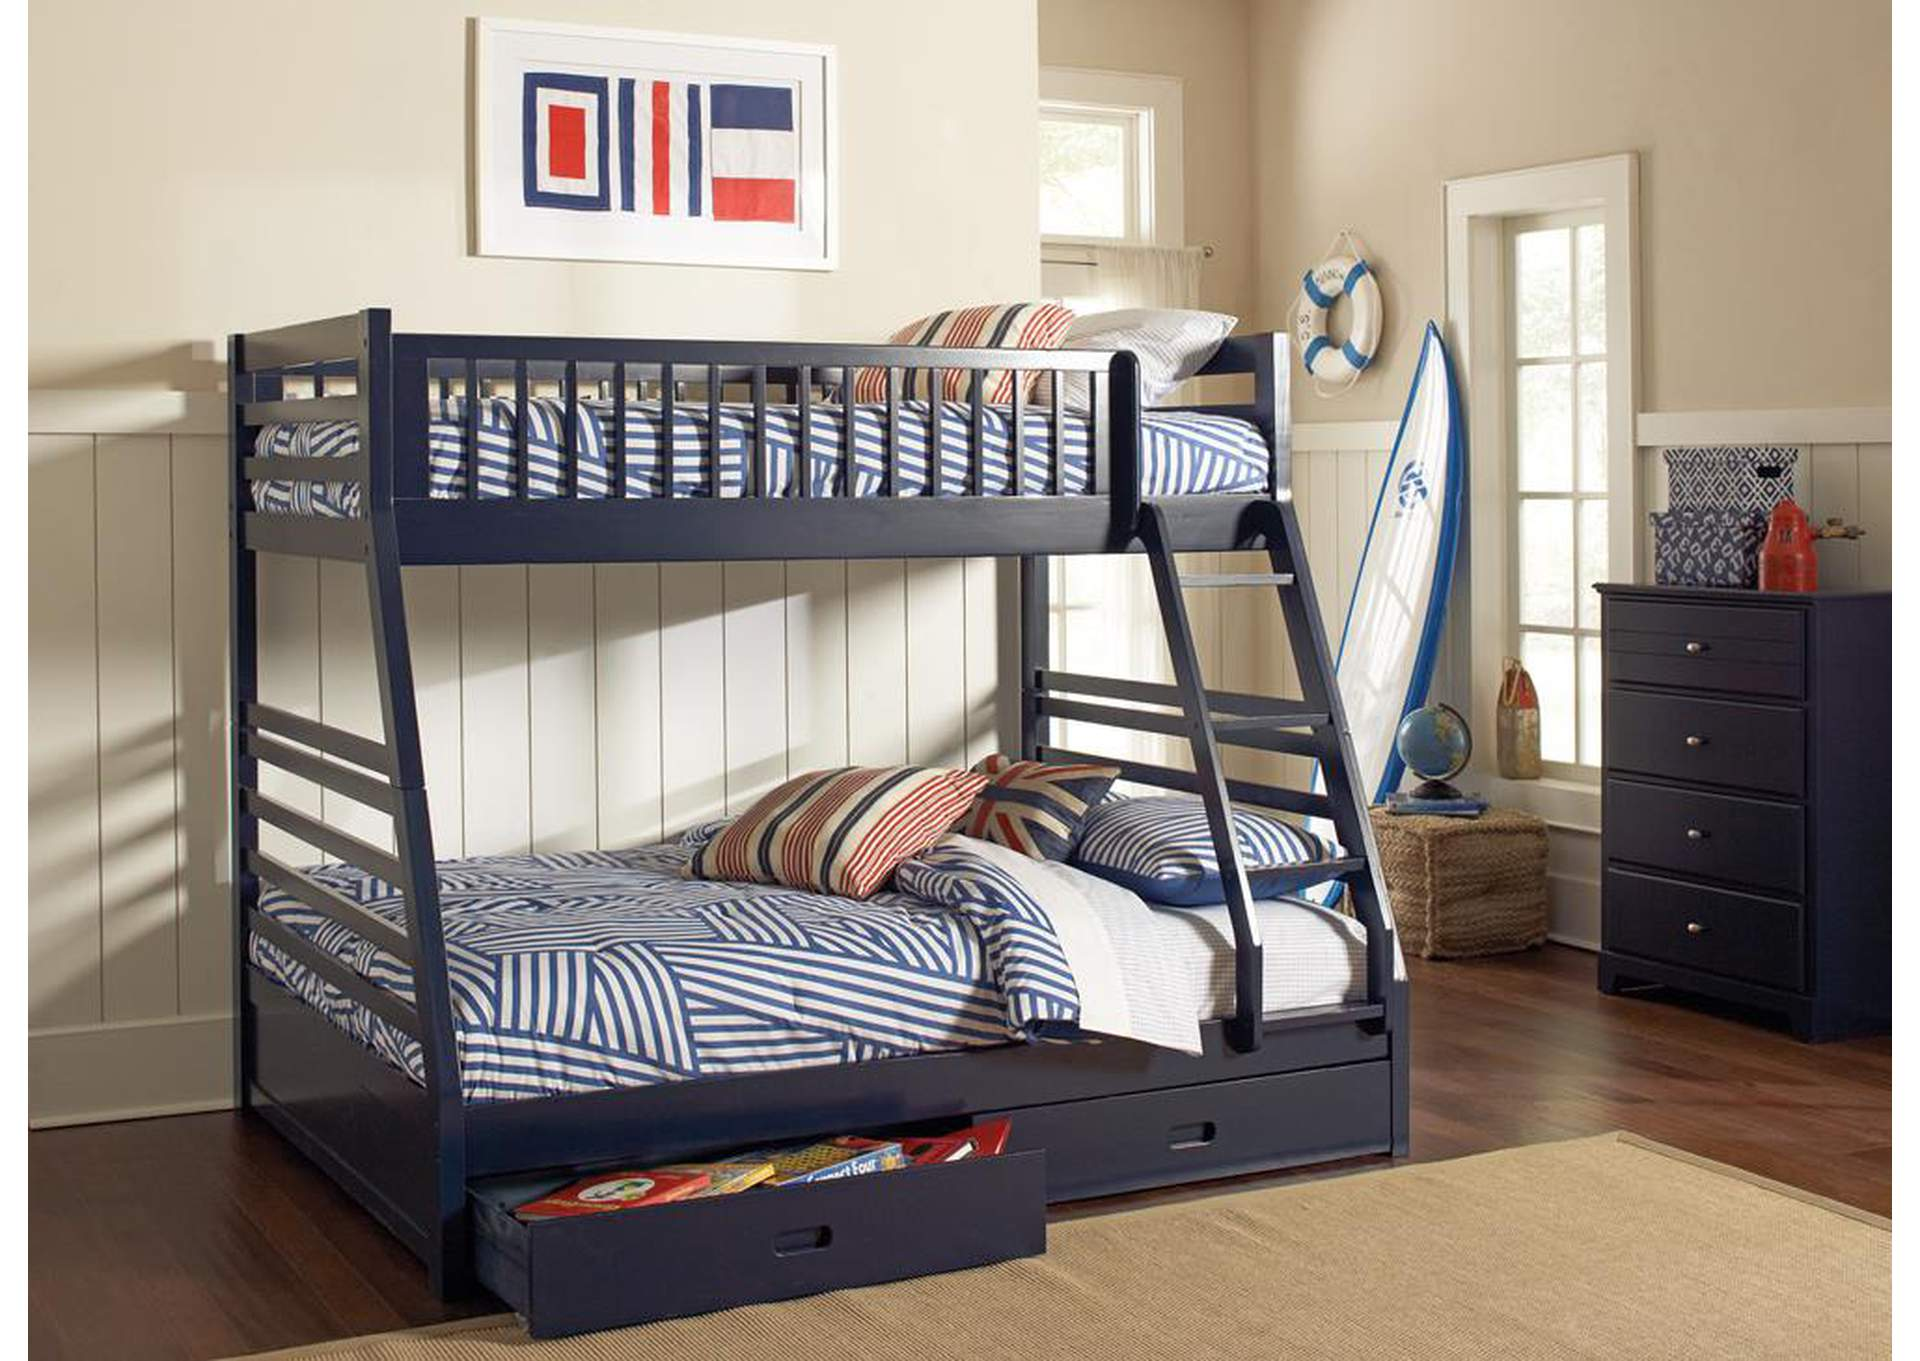 Ashton Navy Twin-over-Full Bunk Bed W/ 2 Drawer Storage,Coaster Furniture